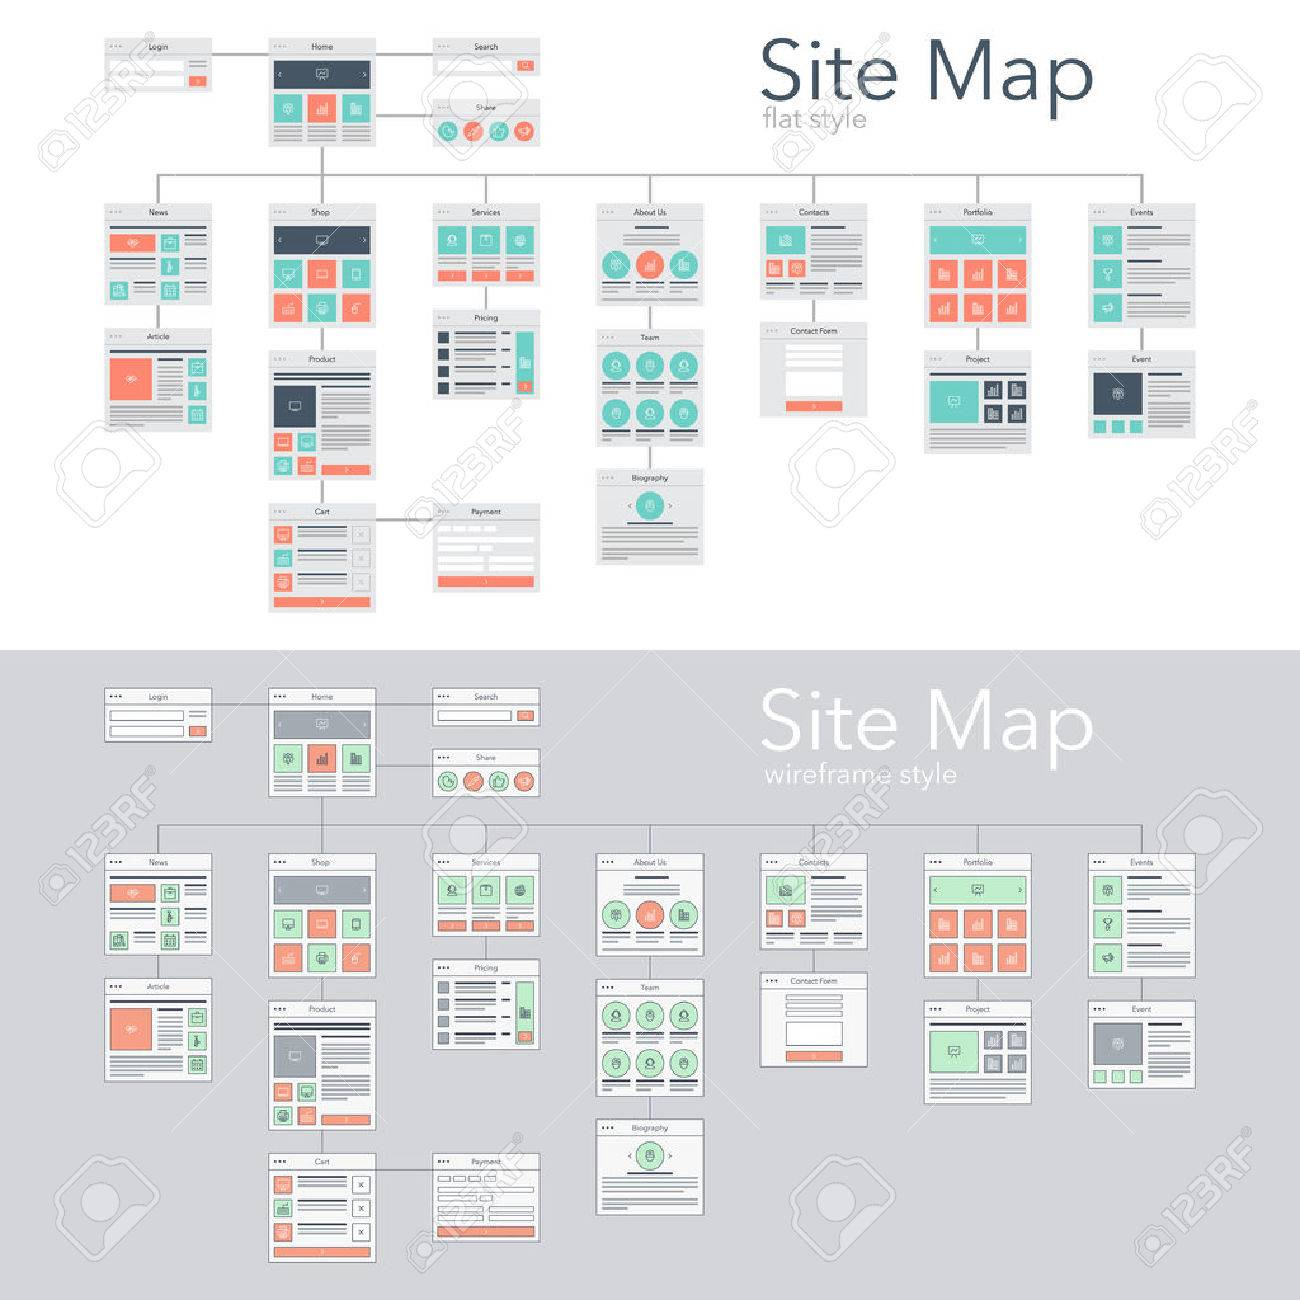 Flat and wireframe design style vector illustration concept of website flowchart sitemap. - 54246490